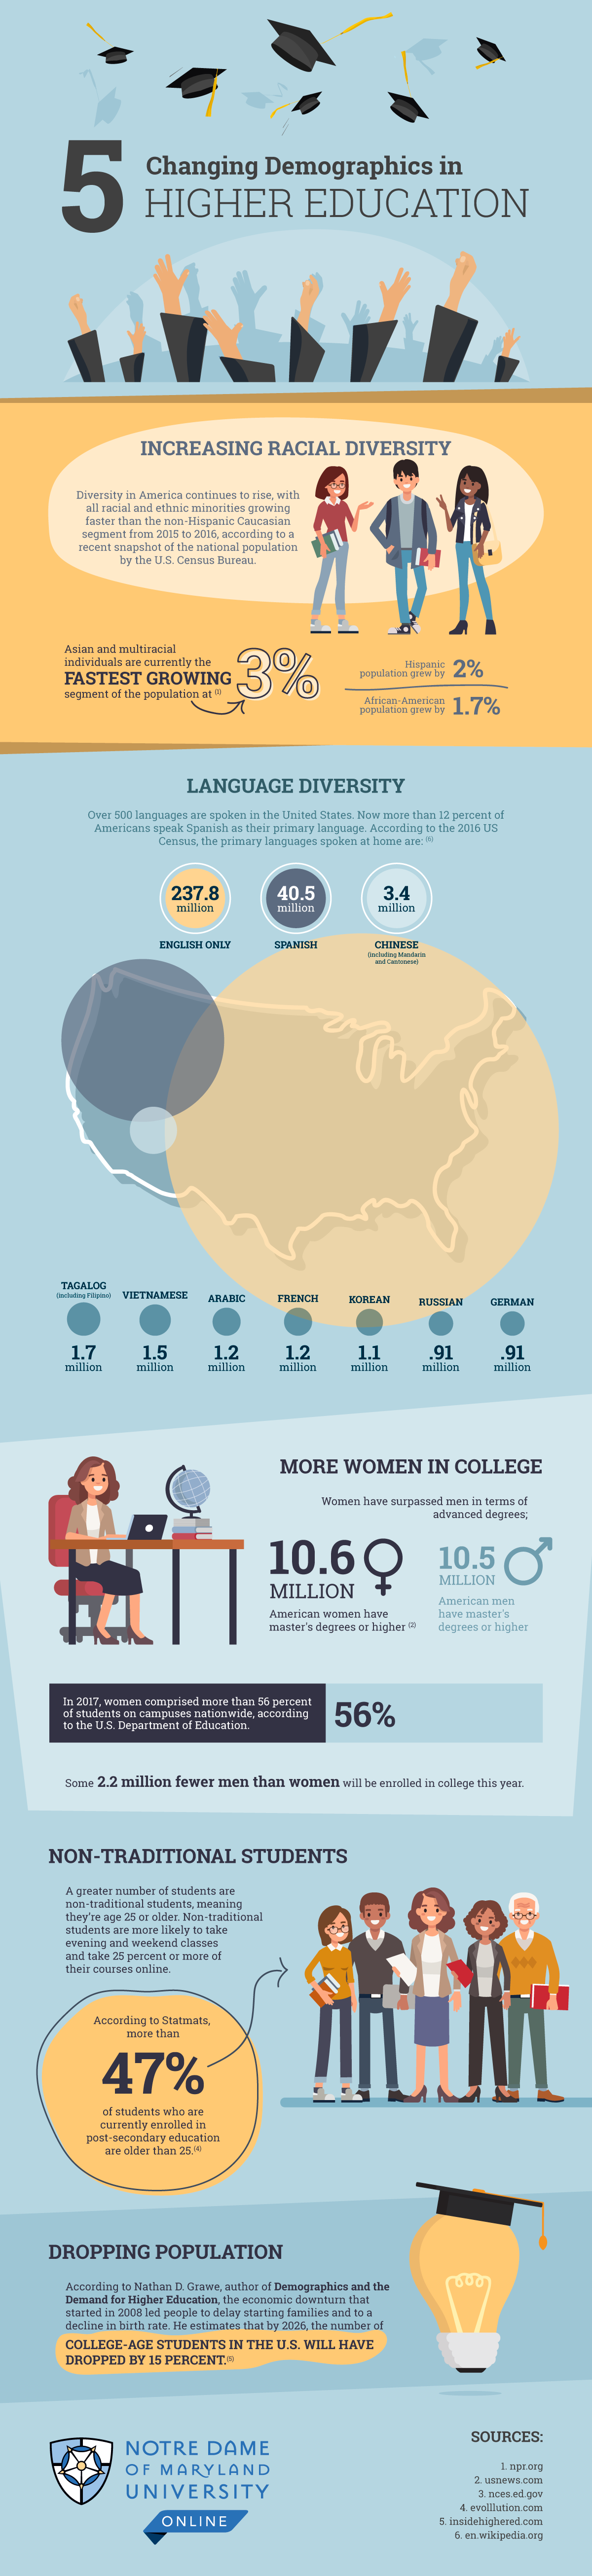 Illustrated infographic detailing five changing demographics in higher education.